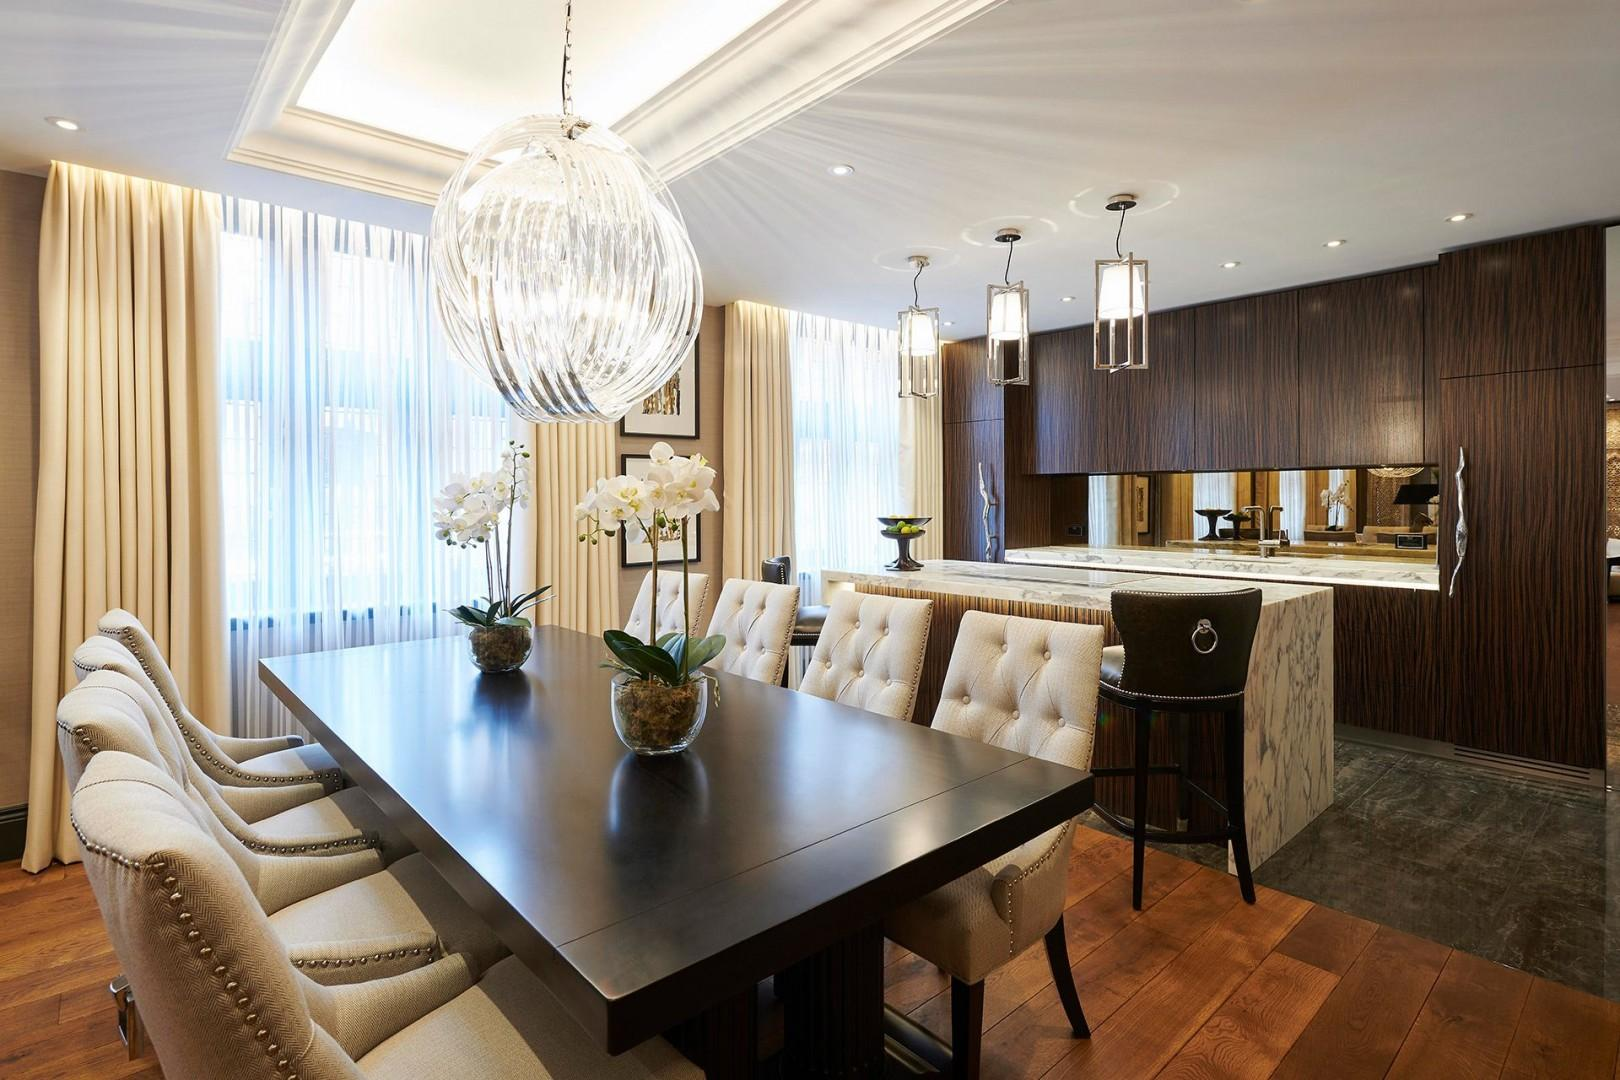 Open-plan kitchen and living quarters, ideal for peaceful respite